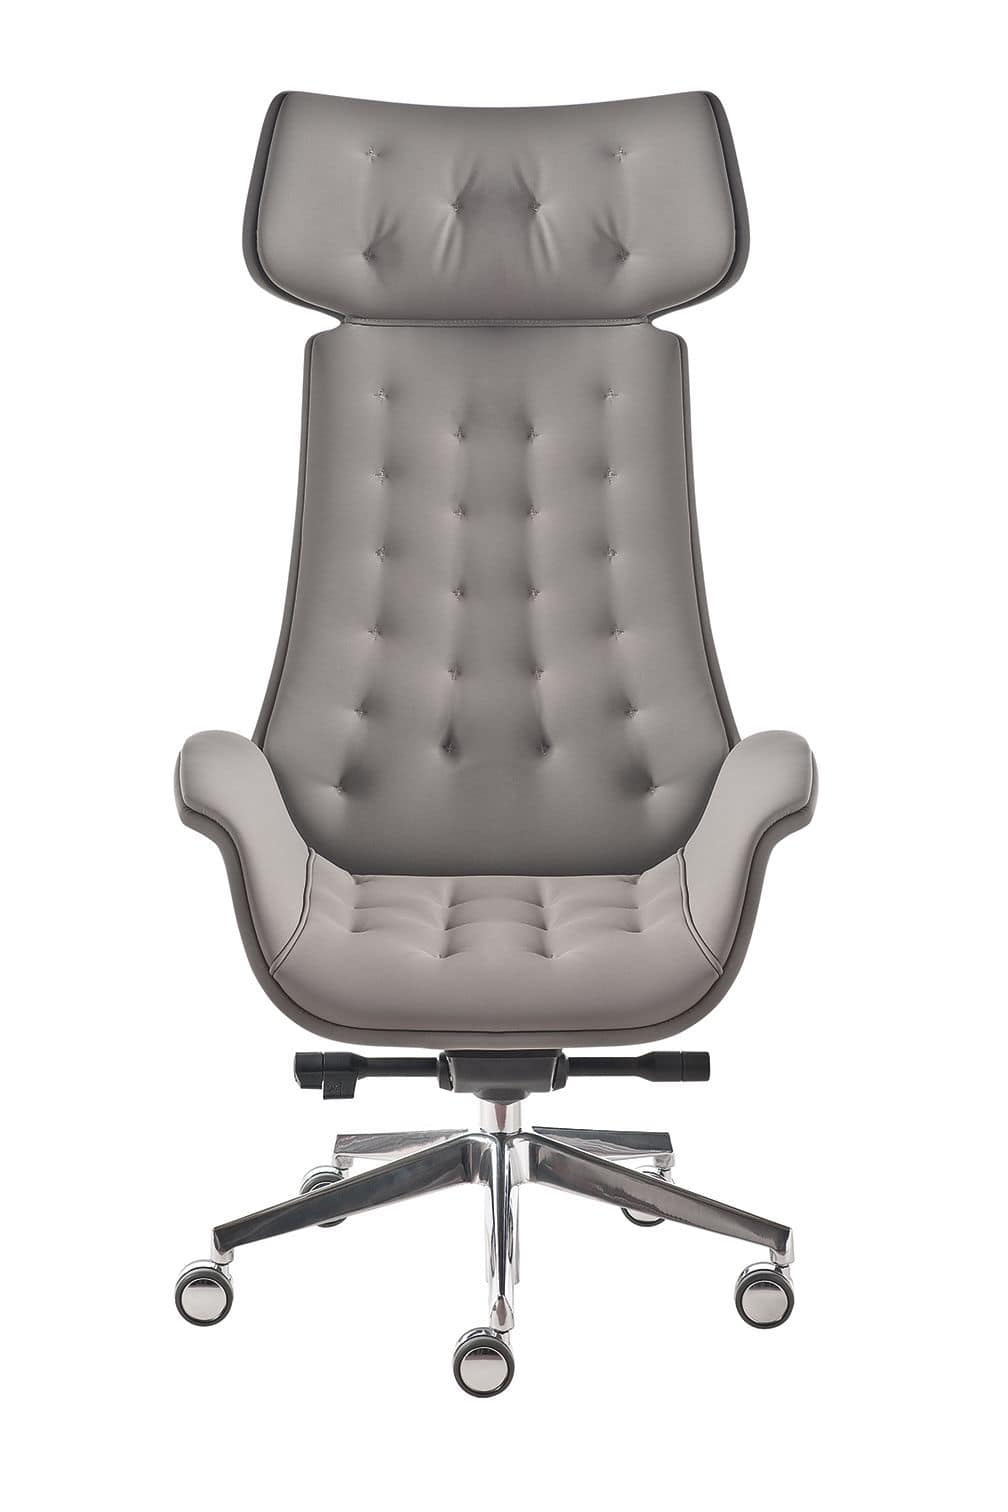 Executive office armchair, quilted padding | IDFdesign